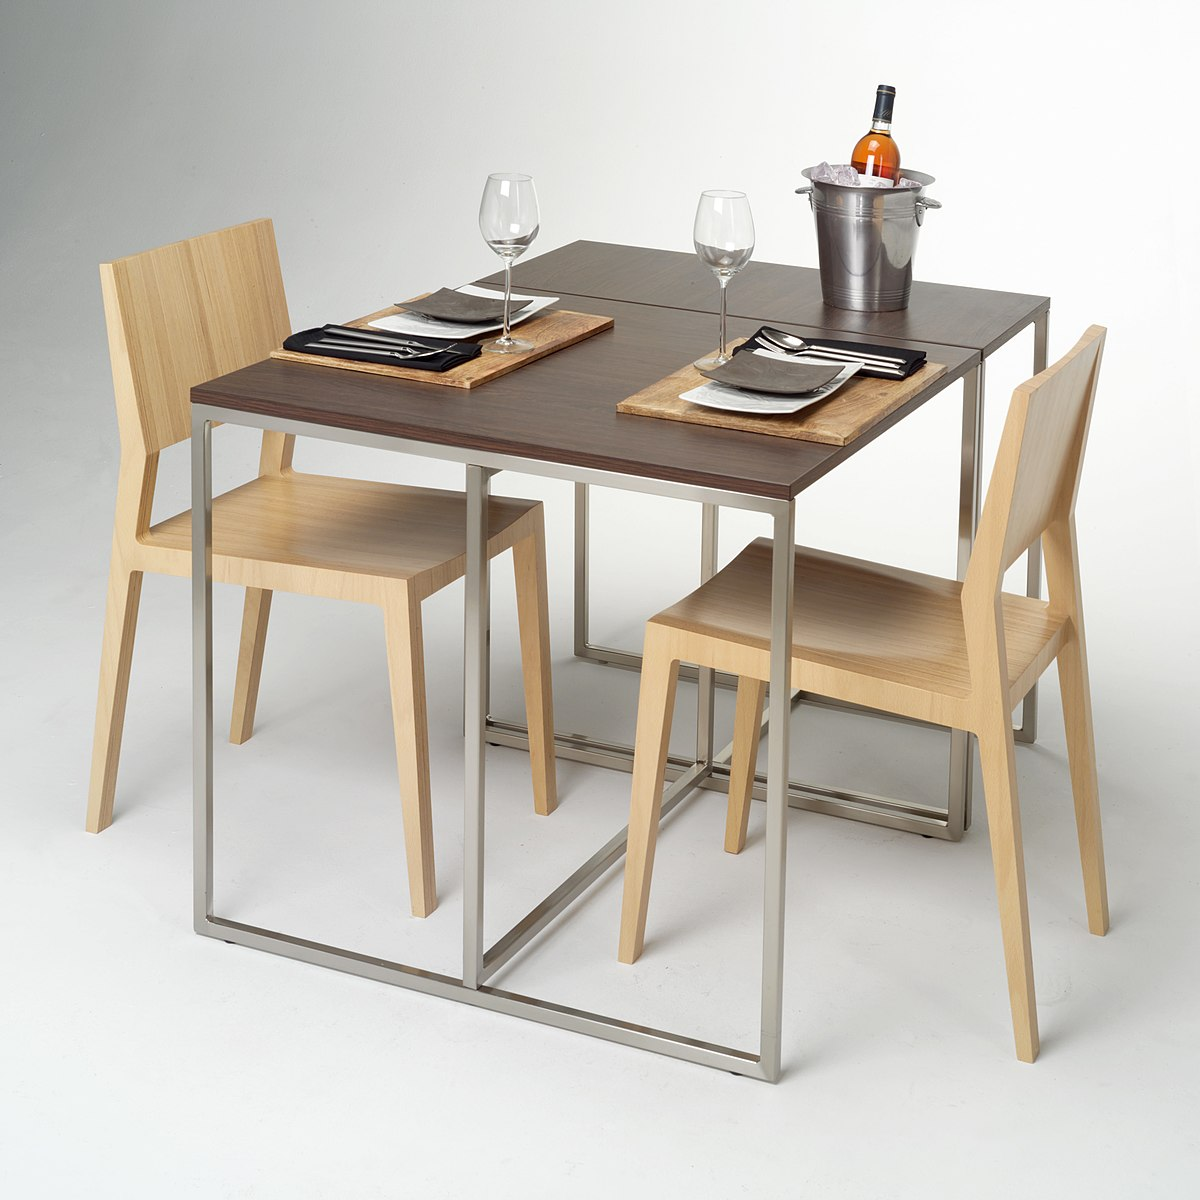 Furniture wikipedia for Small designer dining table